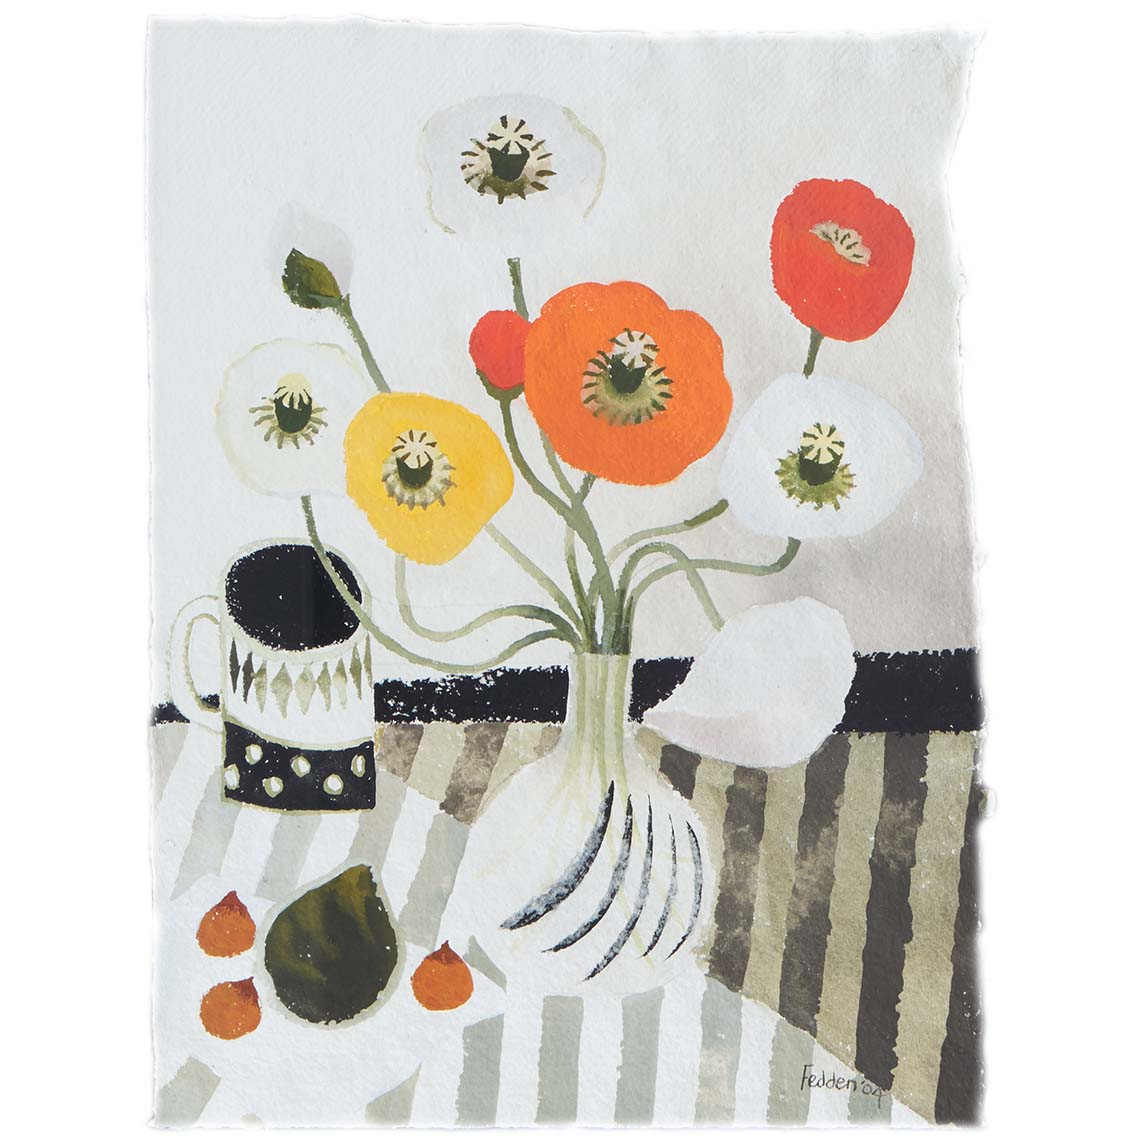 MARY FEDDEN. POPPIES. 2004